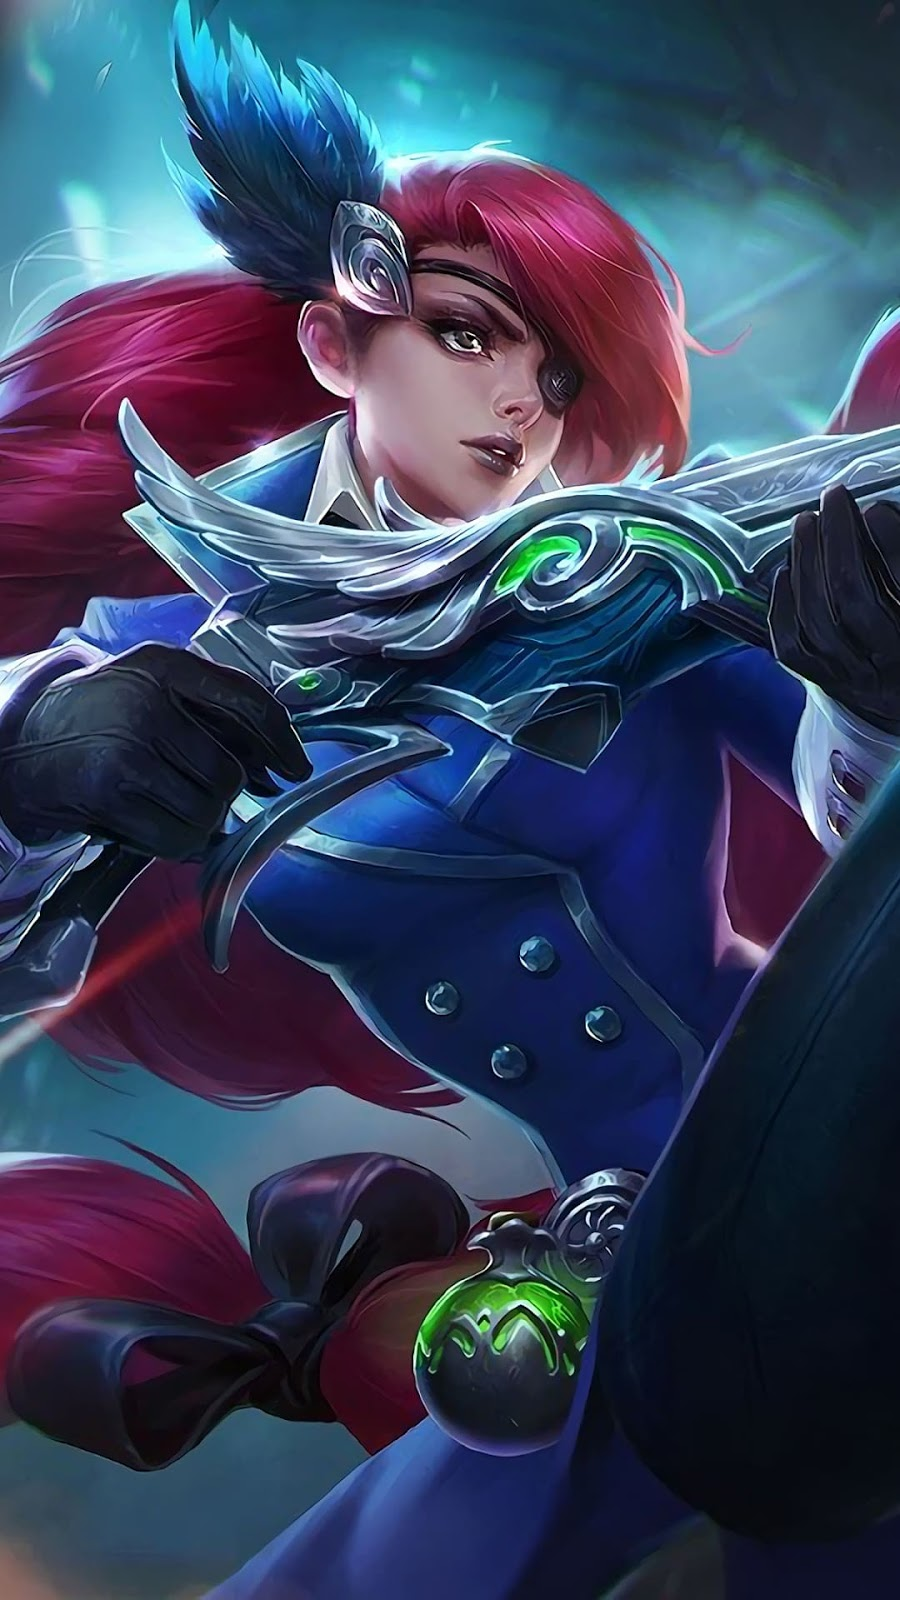 Wallpaper Lesley Sniper Skin Mobile Legends HD for Android and iOS